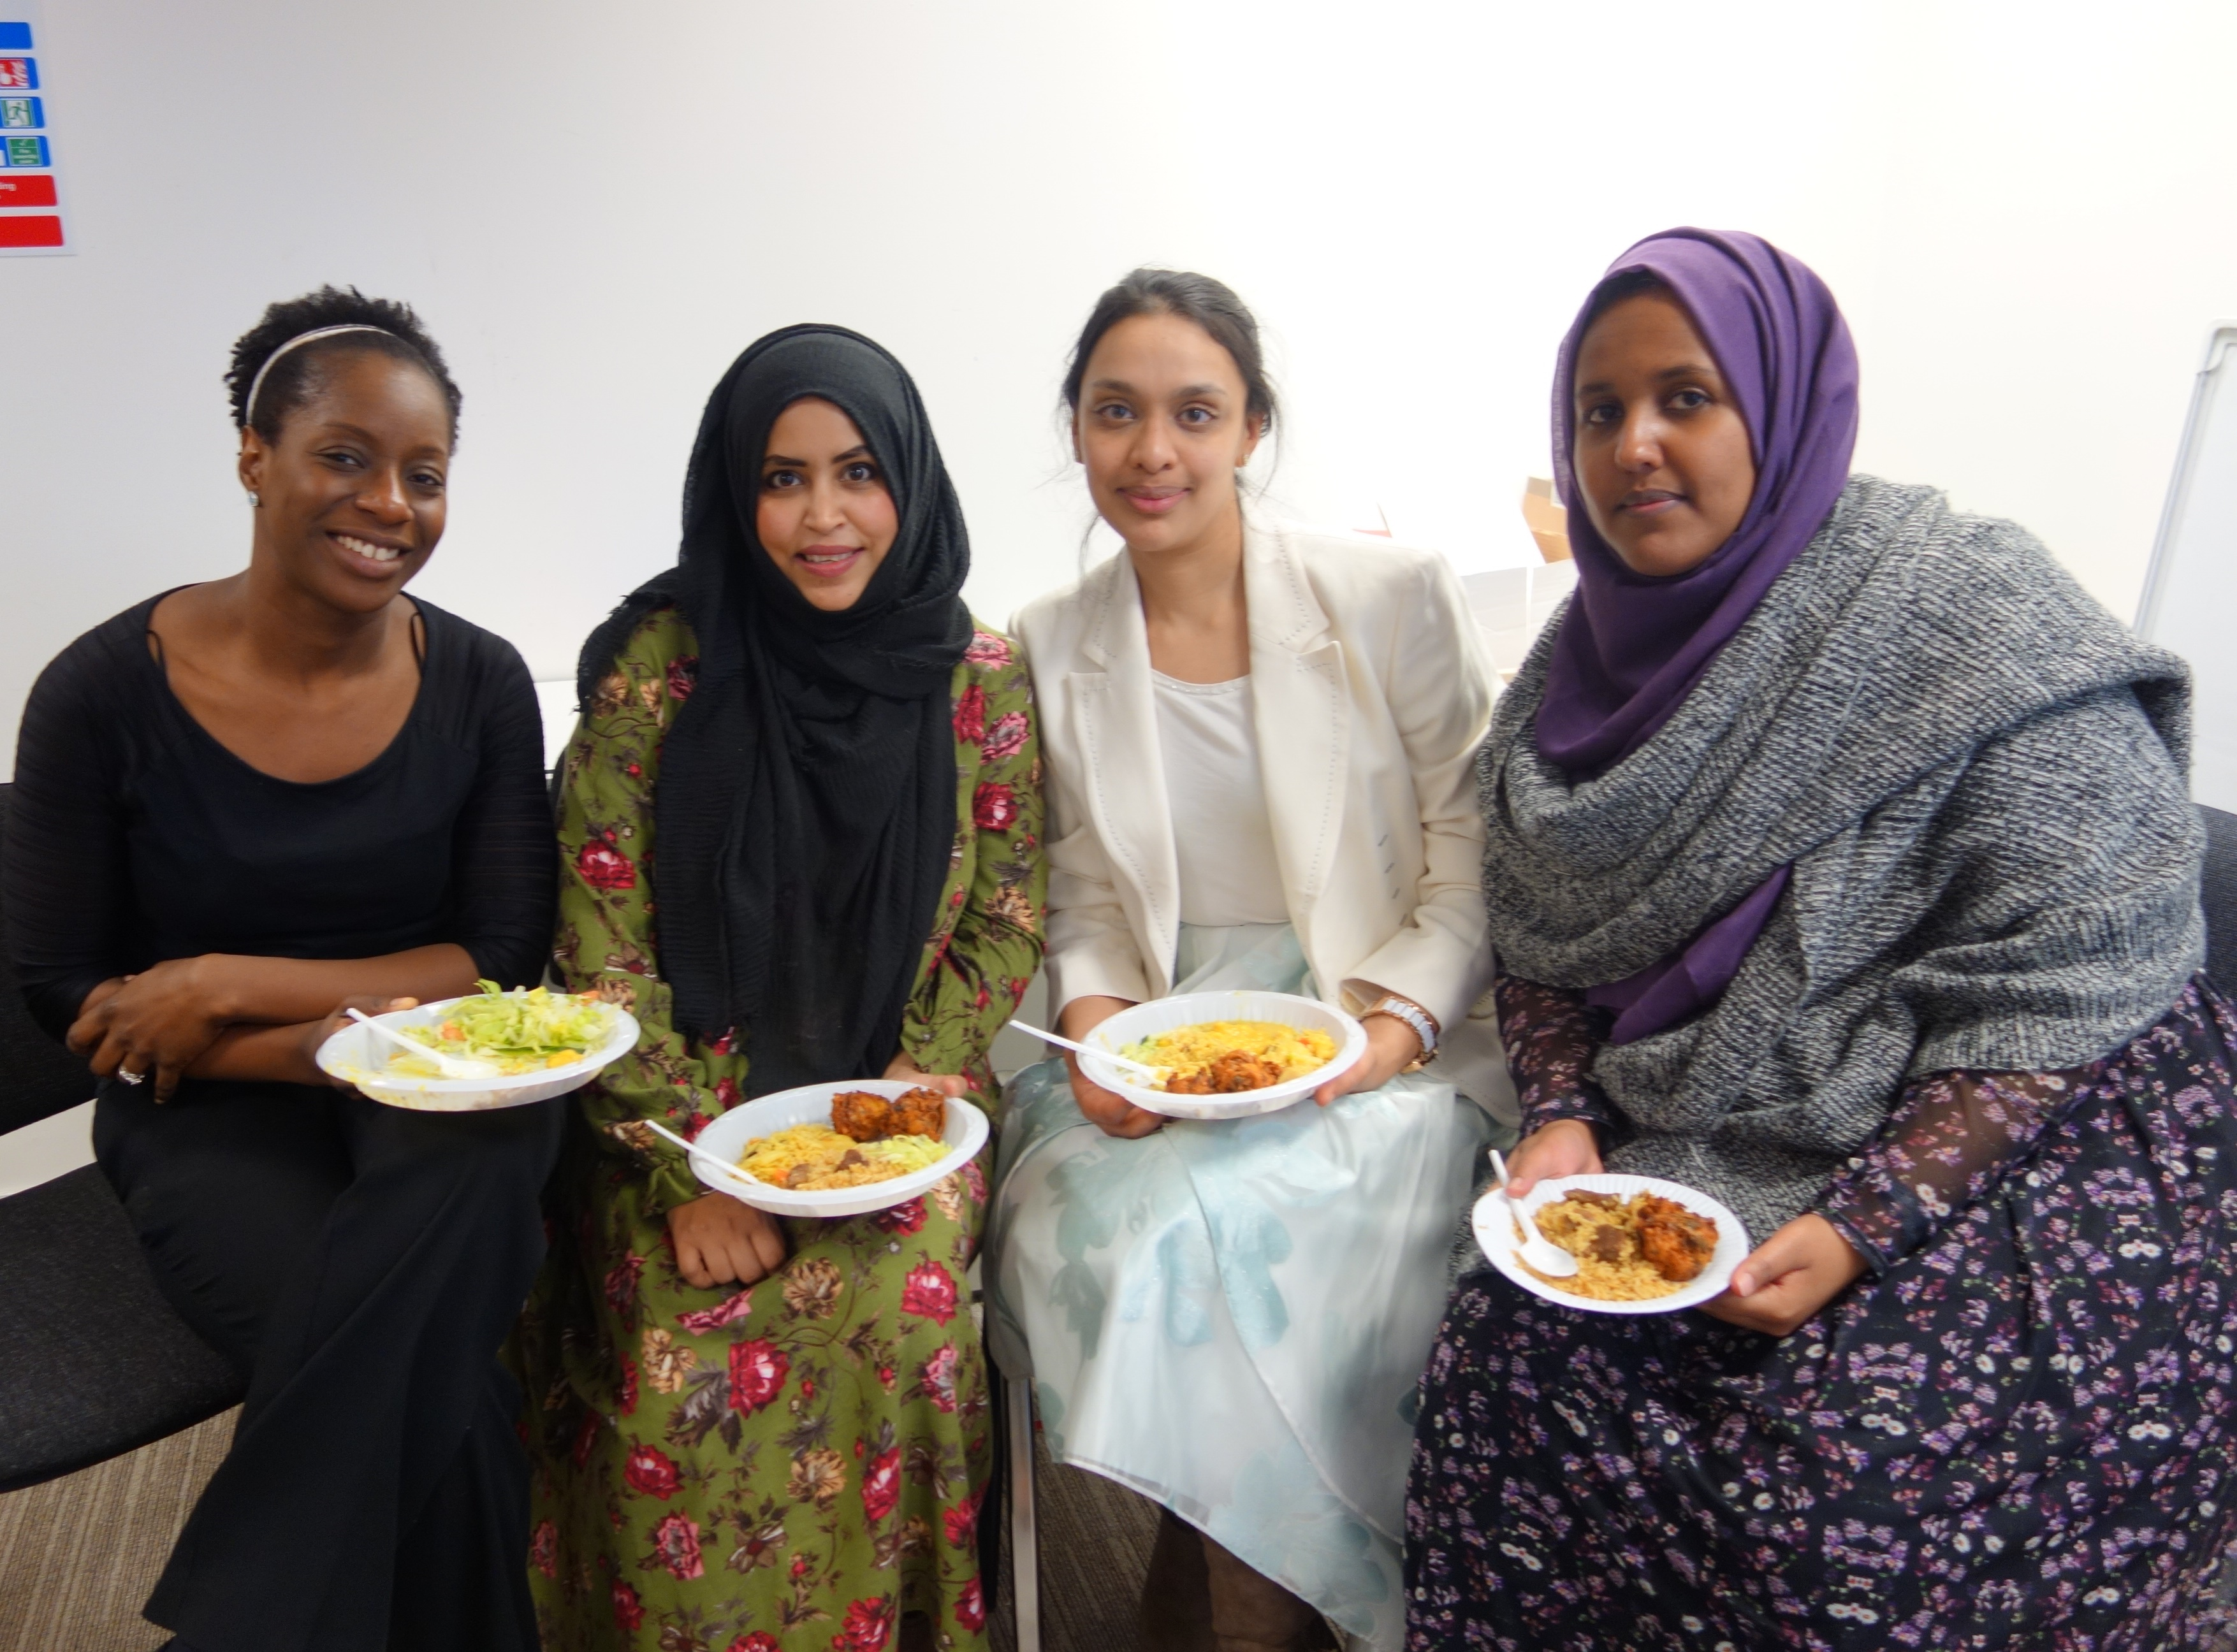 Group of four ladies sitting with food